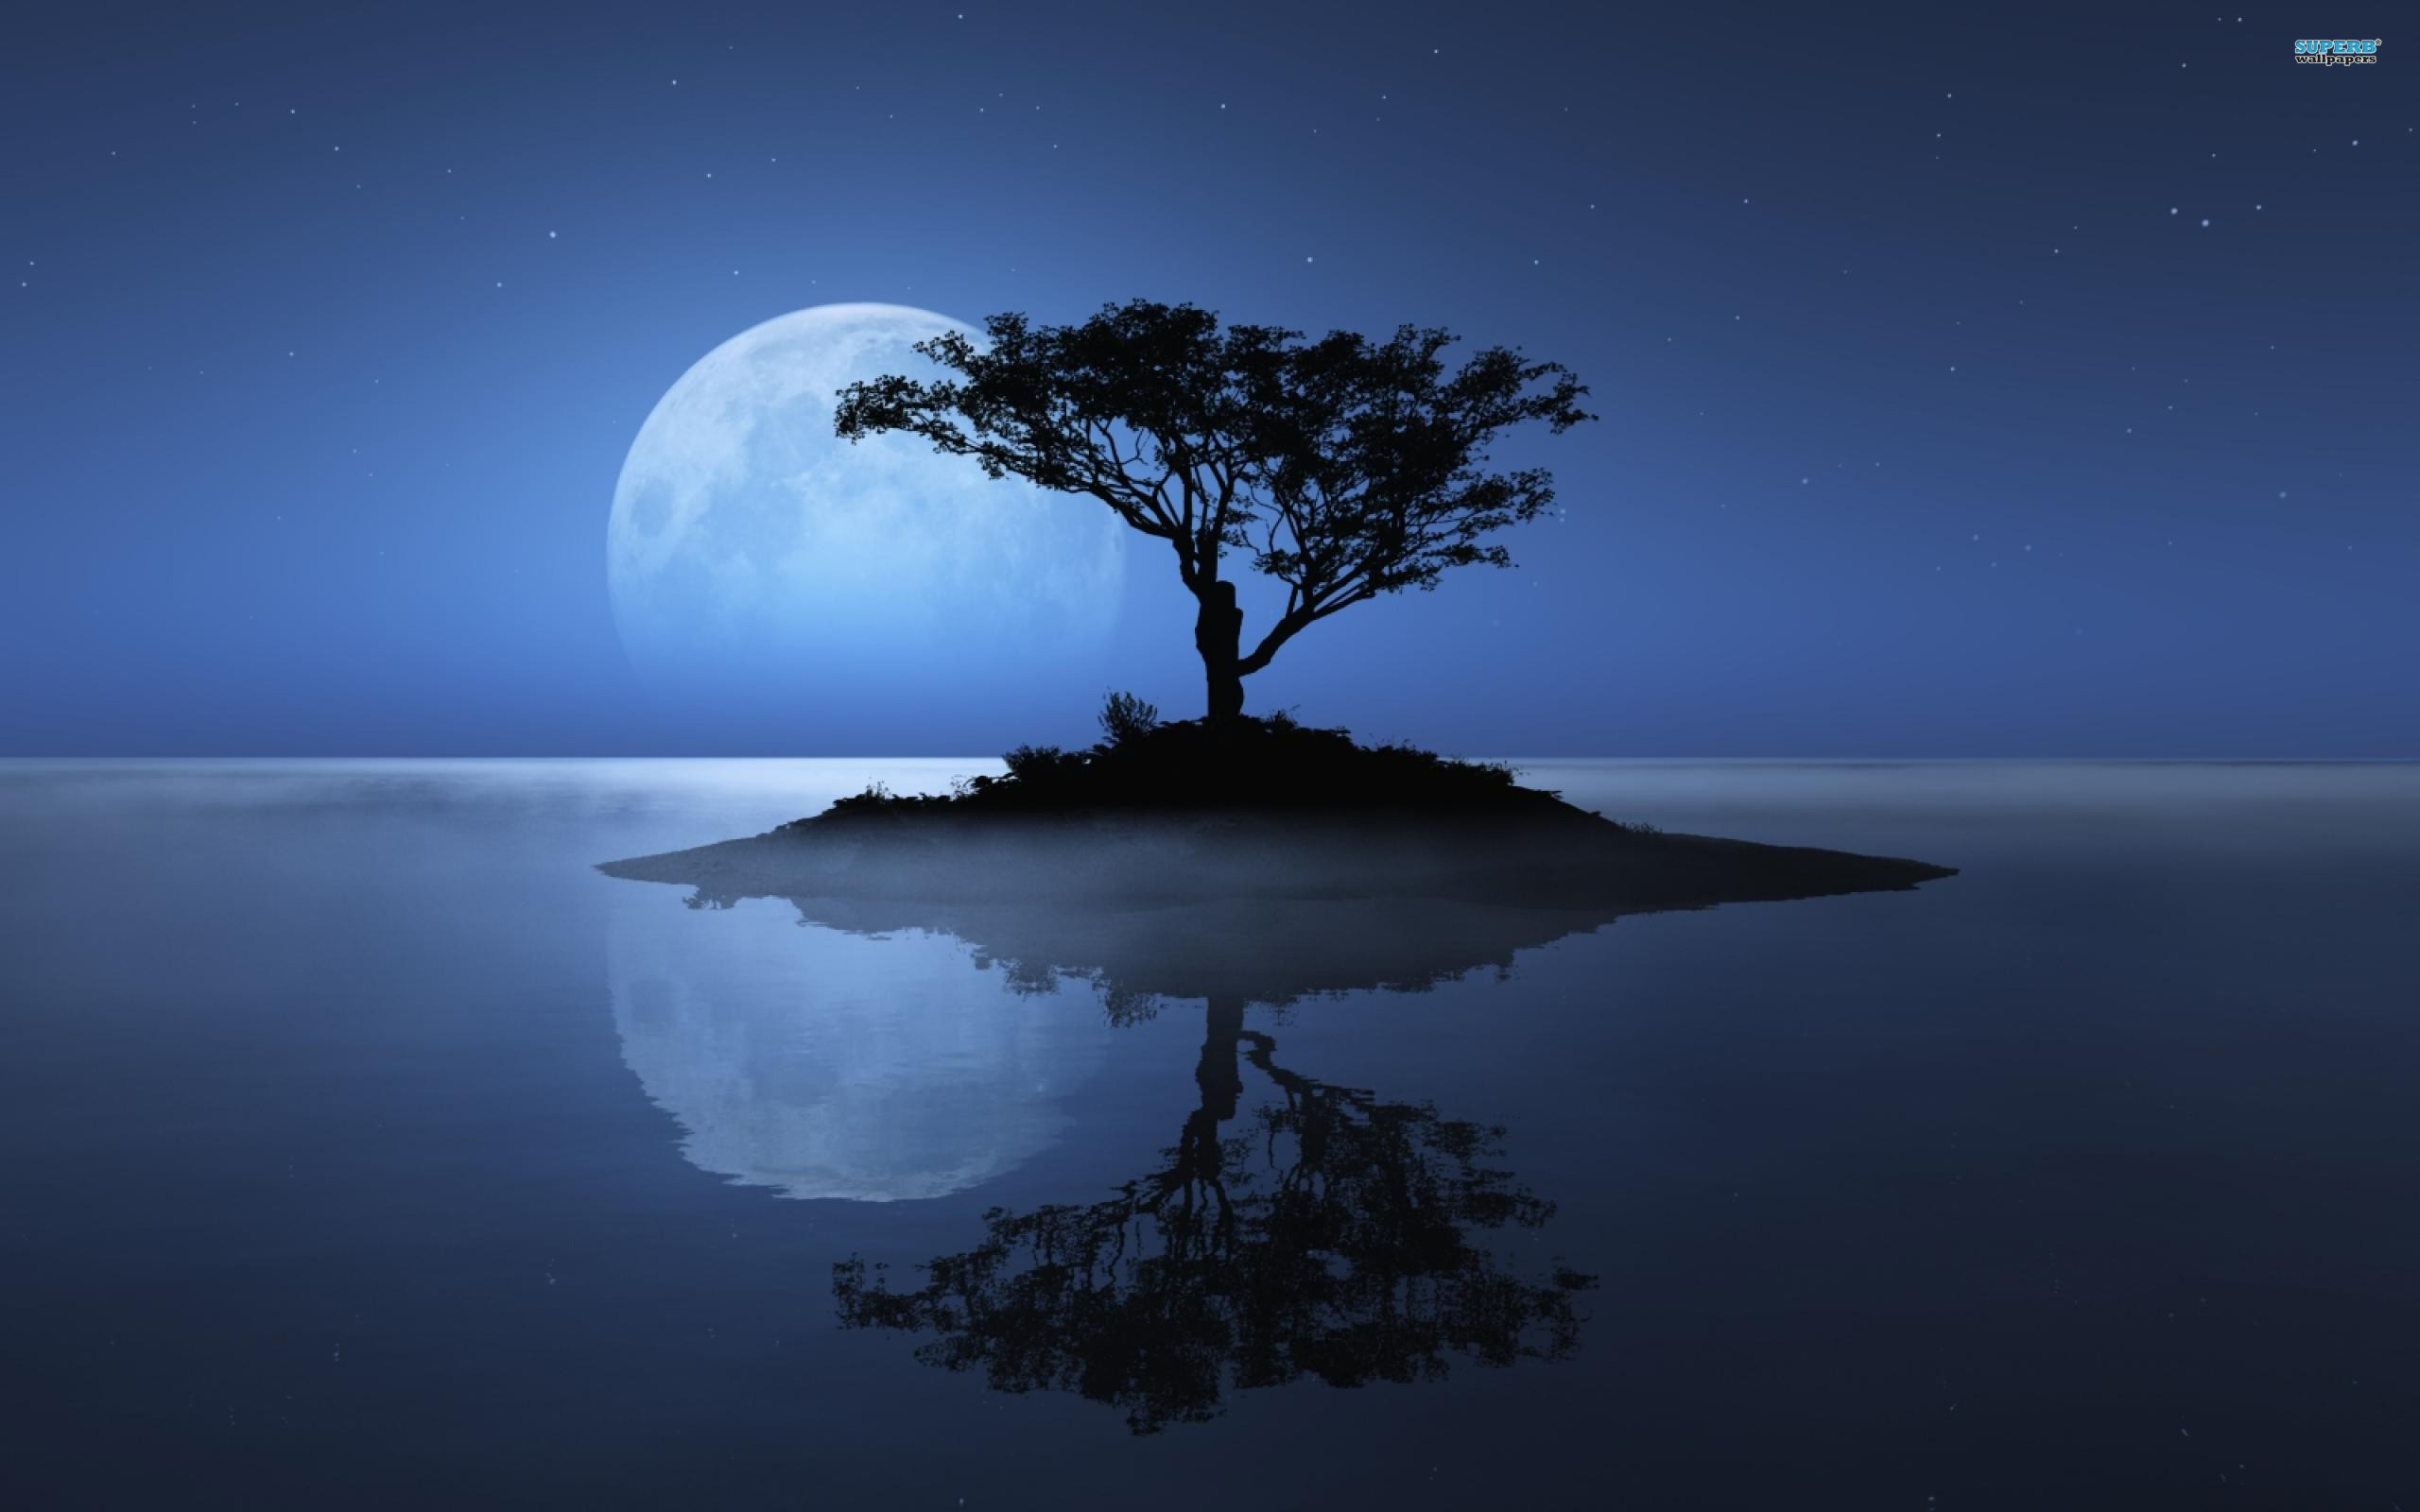 2560x1600 blue moon tree river desktop background background images mac apple  colourful cool desktop wallpapers high definition 4k 2560×1600 Wallpaper HD